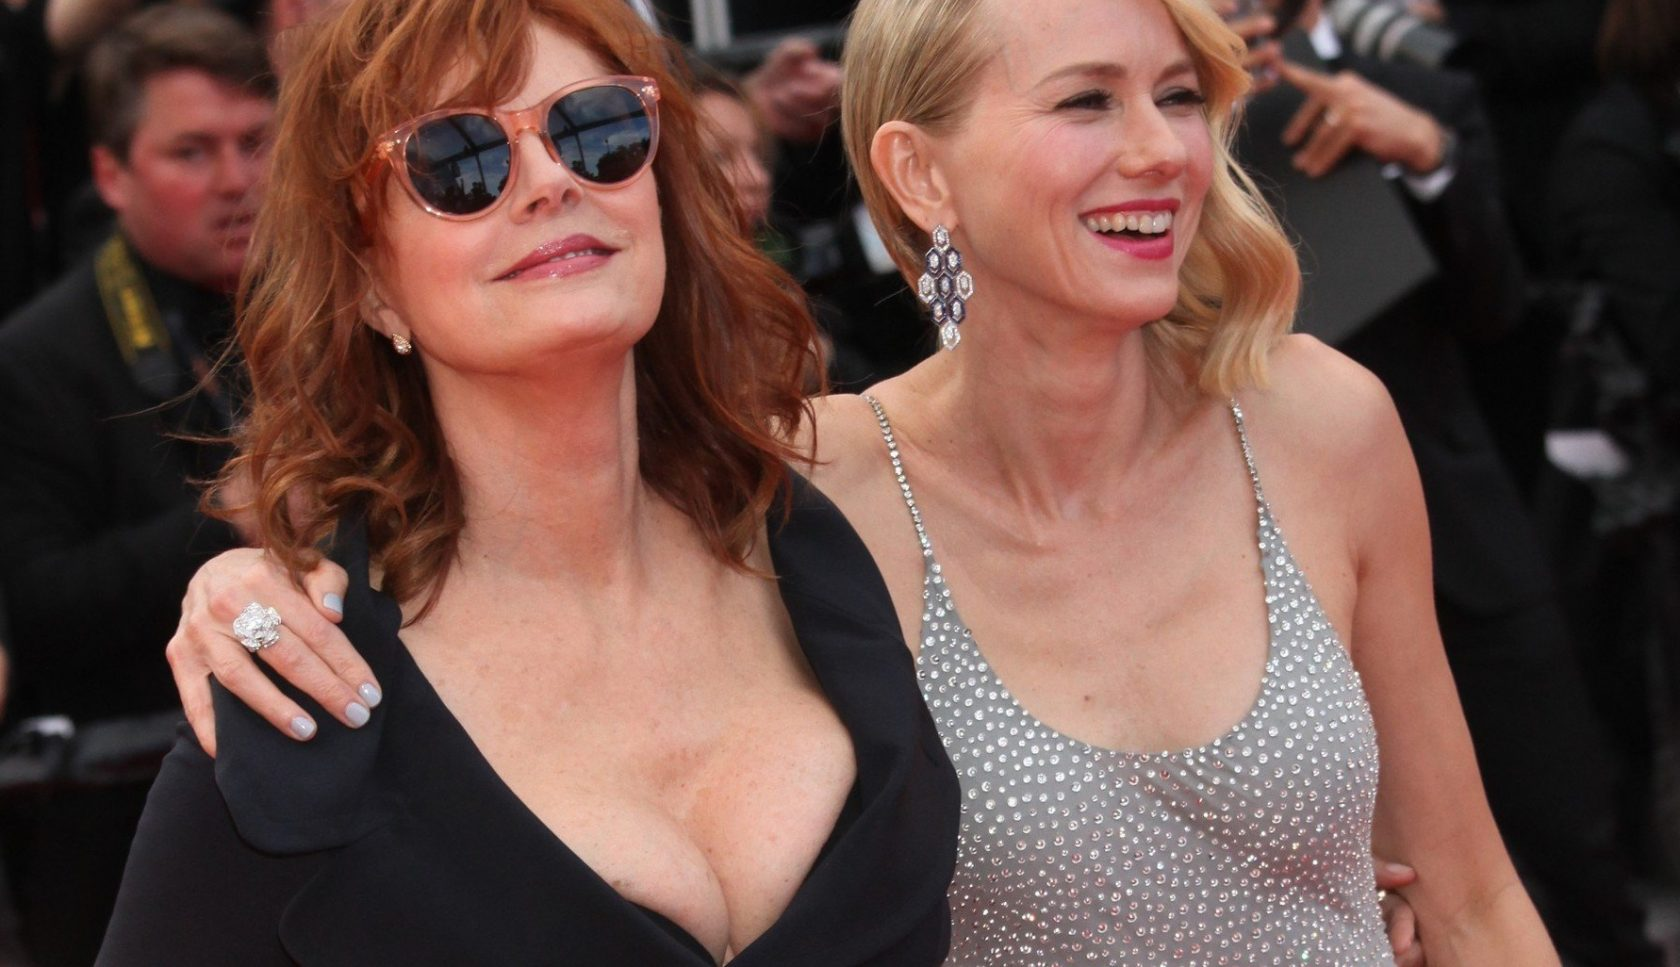 SUSAN SARANDON AND NAOMI WATTS - RED CARPET OF THE FILM 'MONEY MONSTER' AT THE 69TH FESTIVAL OF CANNES 2016, Image: 284282723, License: Rights-managed, Restrictions: NO RESTRICTION, Model Release: no, Credit line: Profimedia, Visual